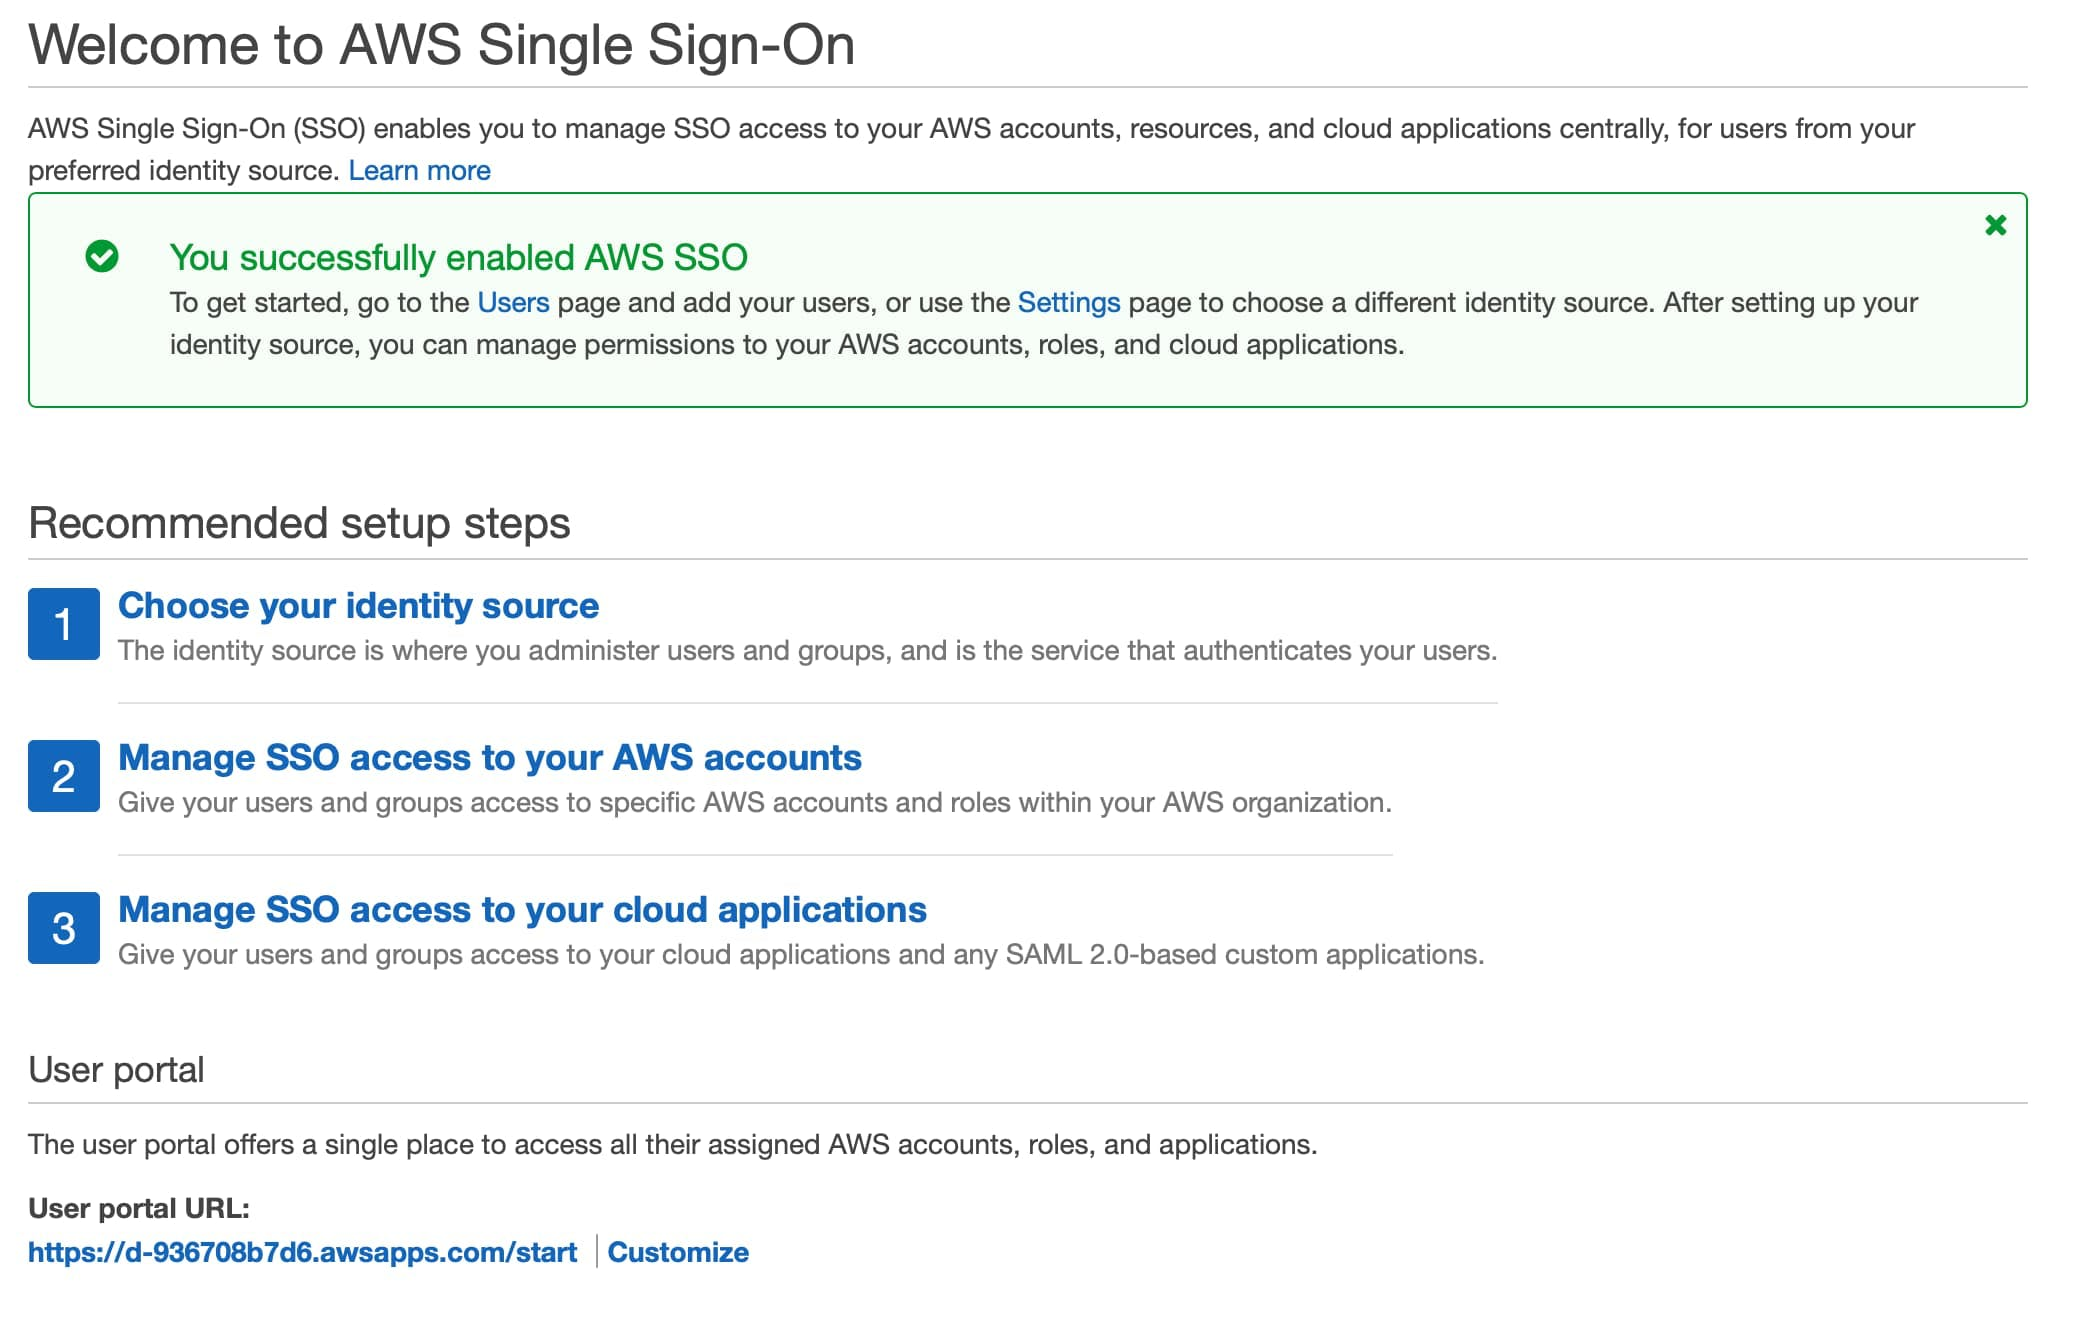 AWS SSO enabled page with user portal url